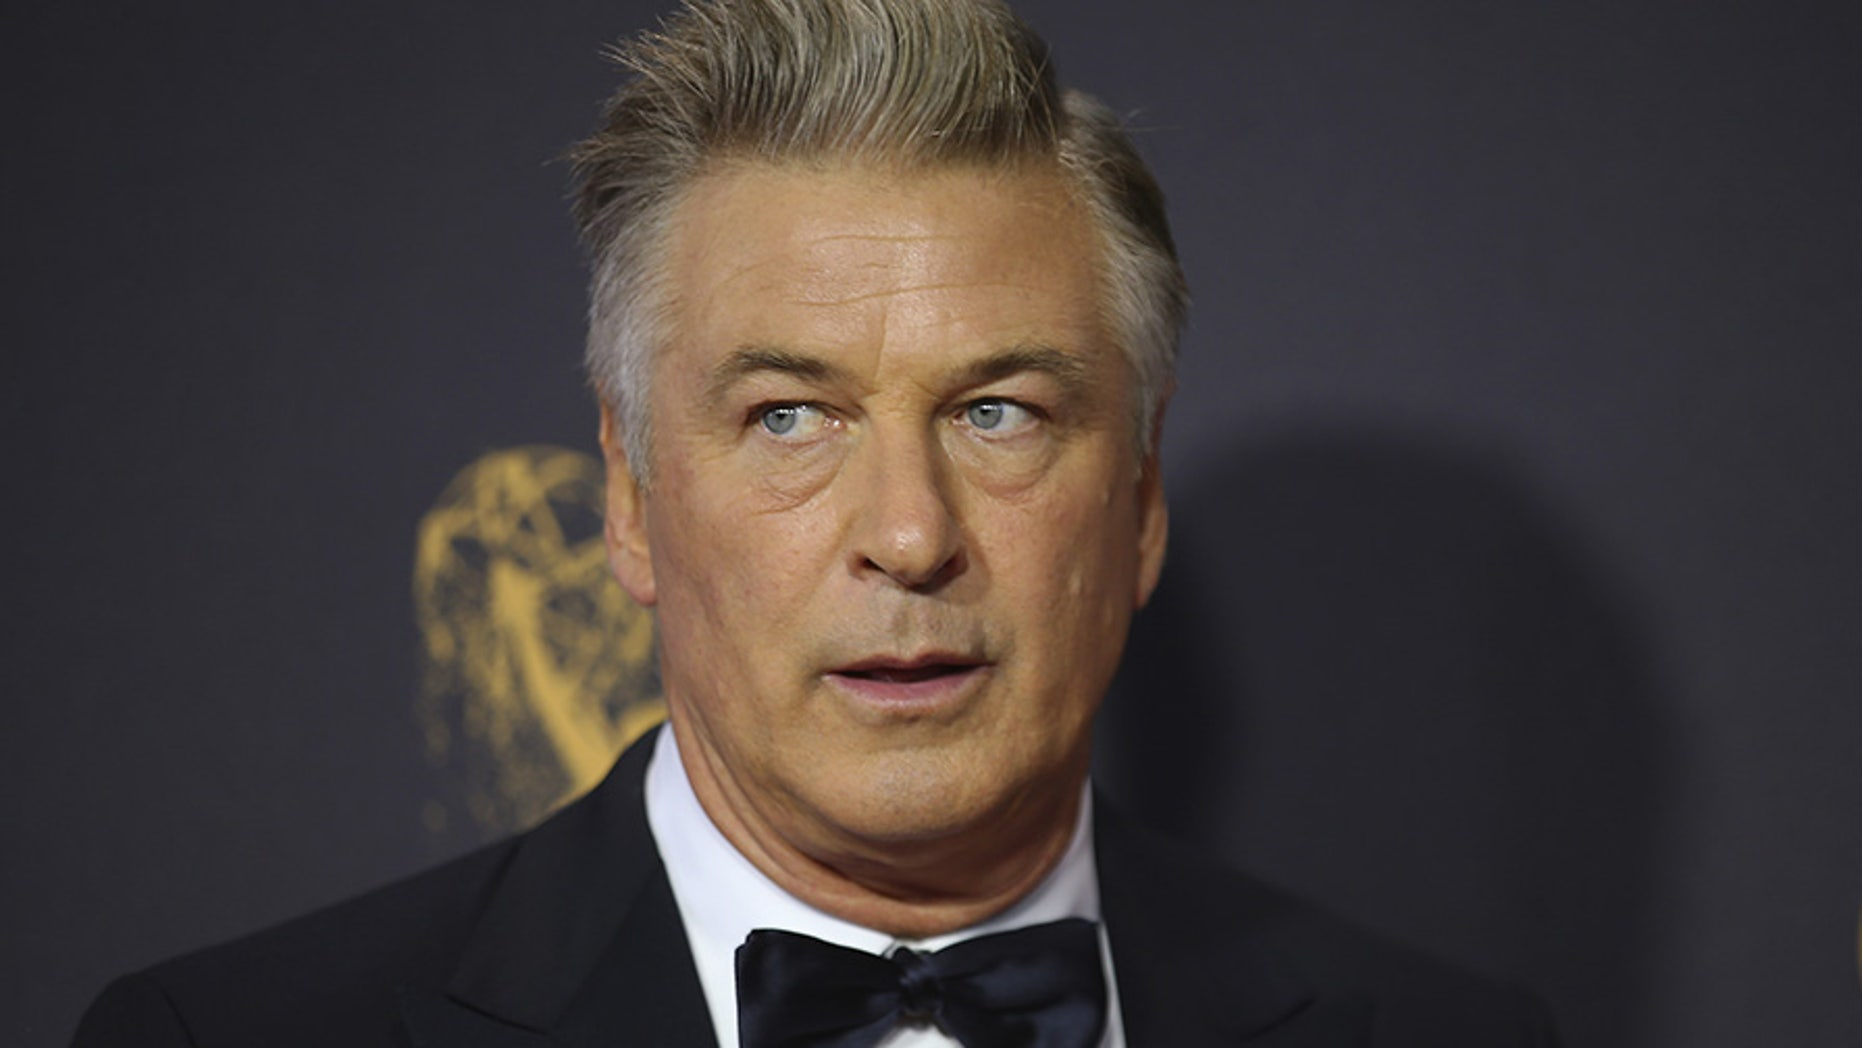 September 17, 2017: Alec Baldwin arrives to 69th Primetime Emmy Awards in Los Angeles, California.